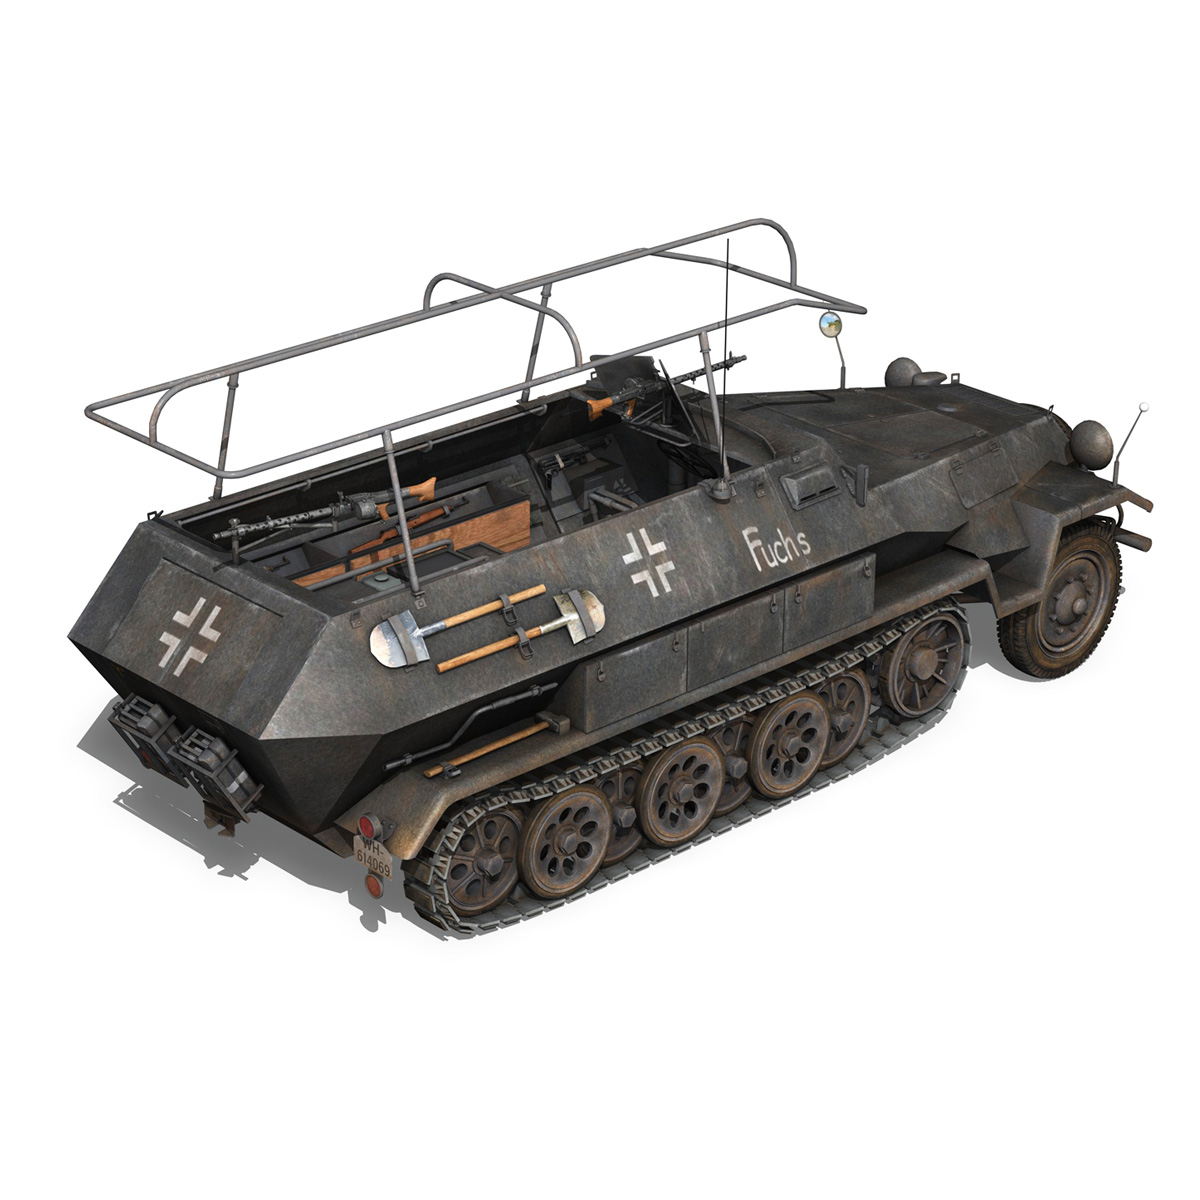 sd.kfz 251 ausf b – communications vehicle – 8pd 3d model 3ds fbx lwo lw lws obj c4d 292030